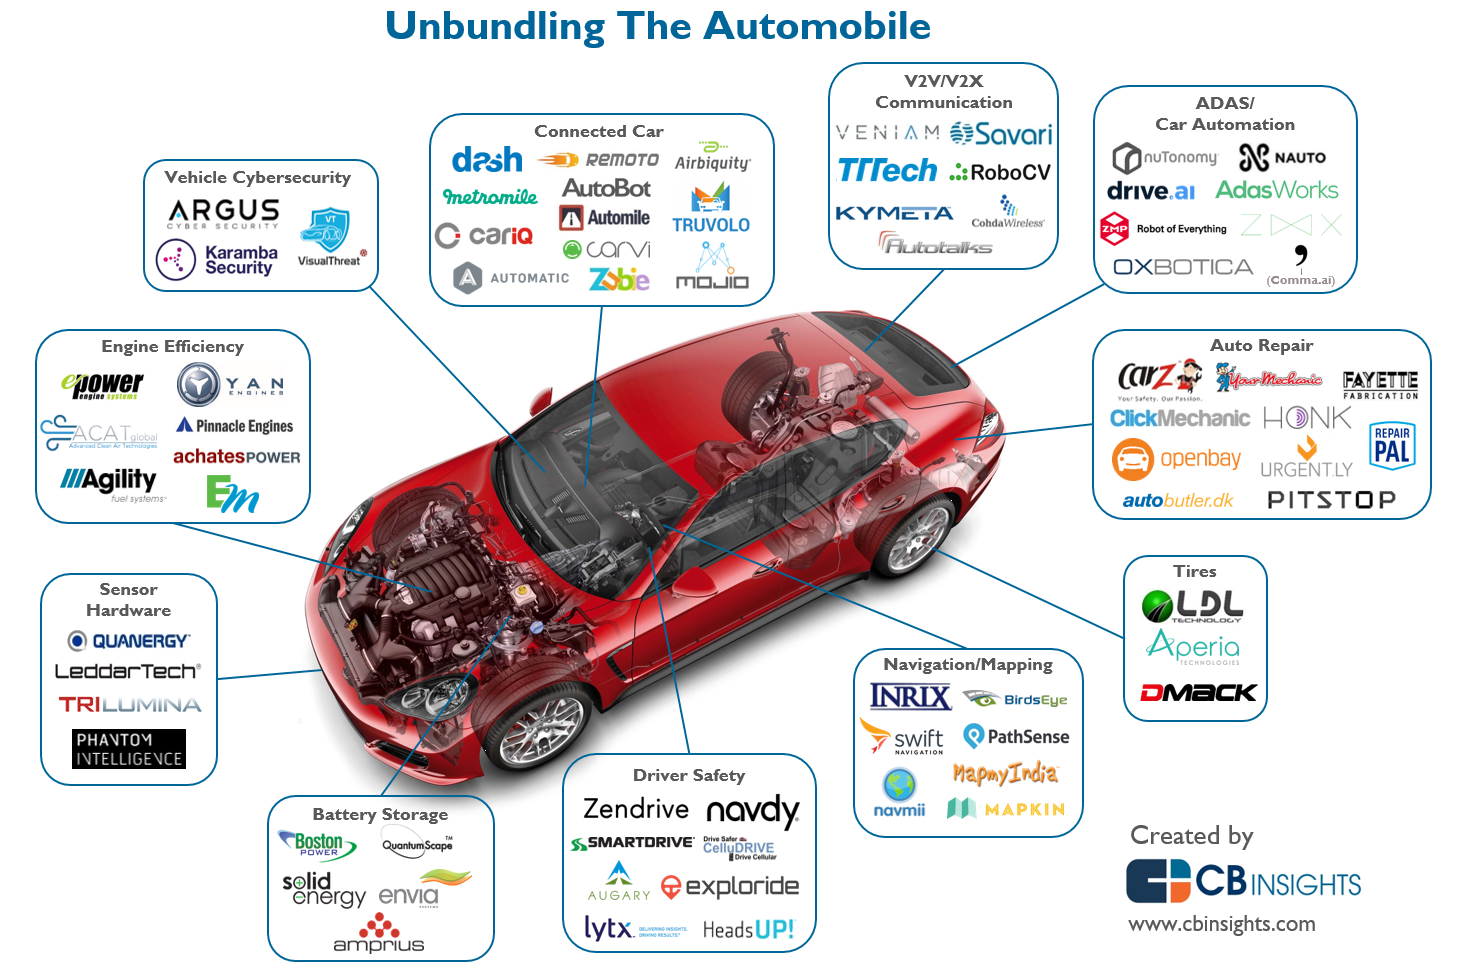 Disrupting The Auto Industry: The Startups That Are Unbundling The